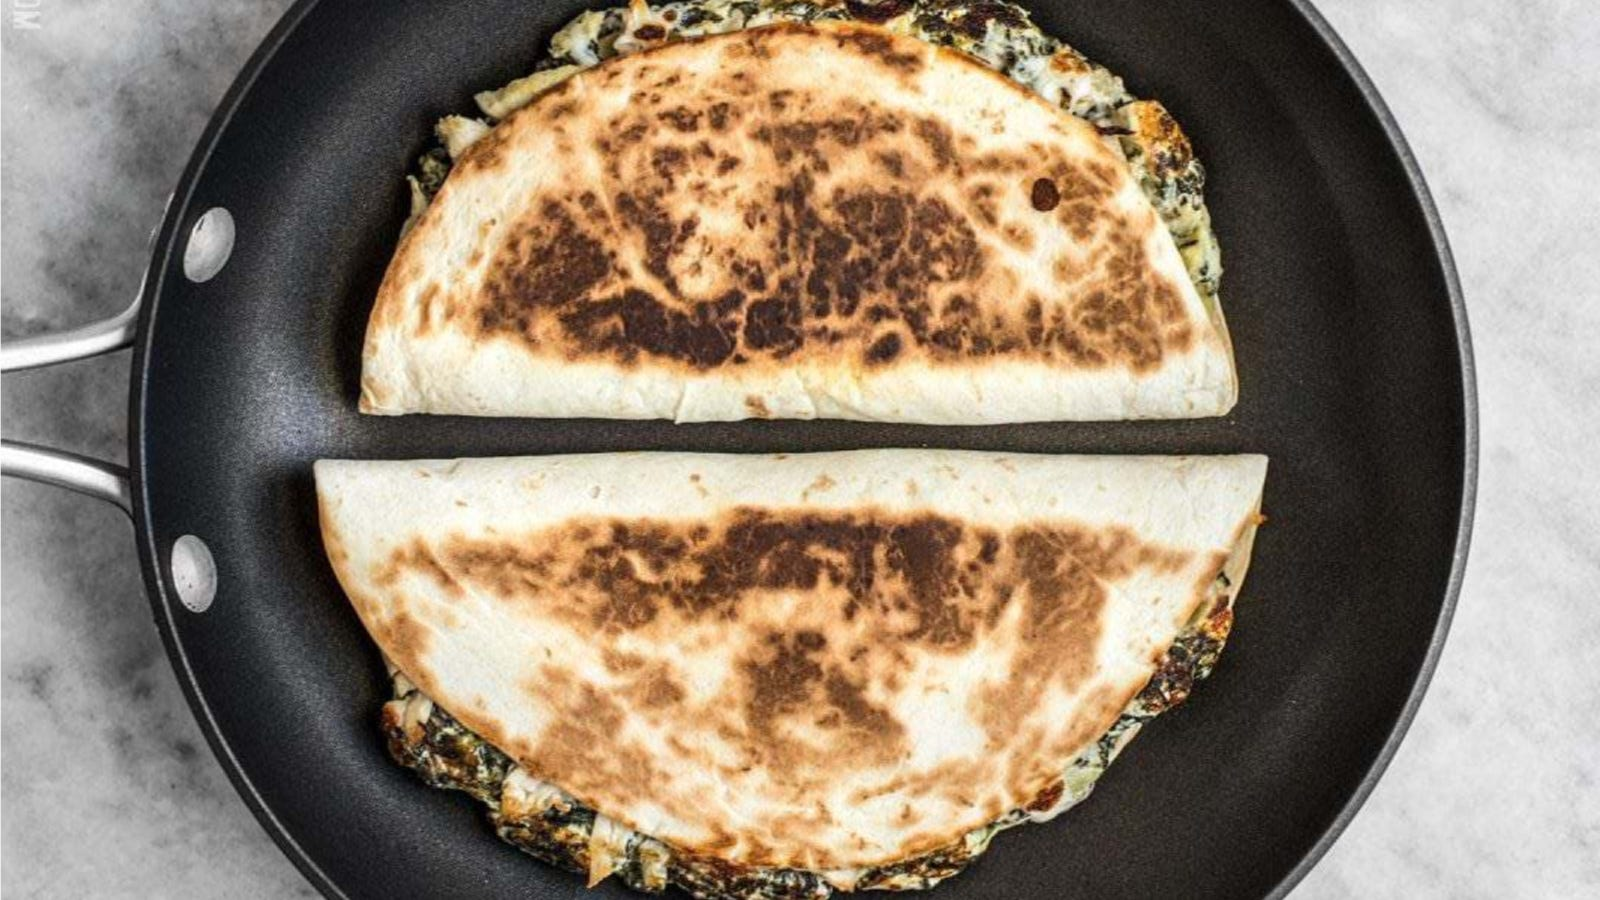 Two quesadilla's stuffed with spinach and artichoke, sitting in a hot skillet ready to be transferred to a cutting board.